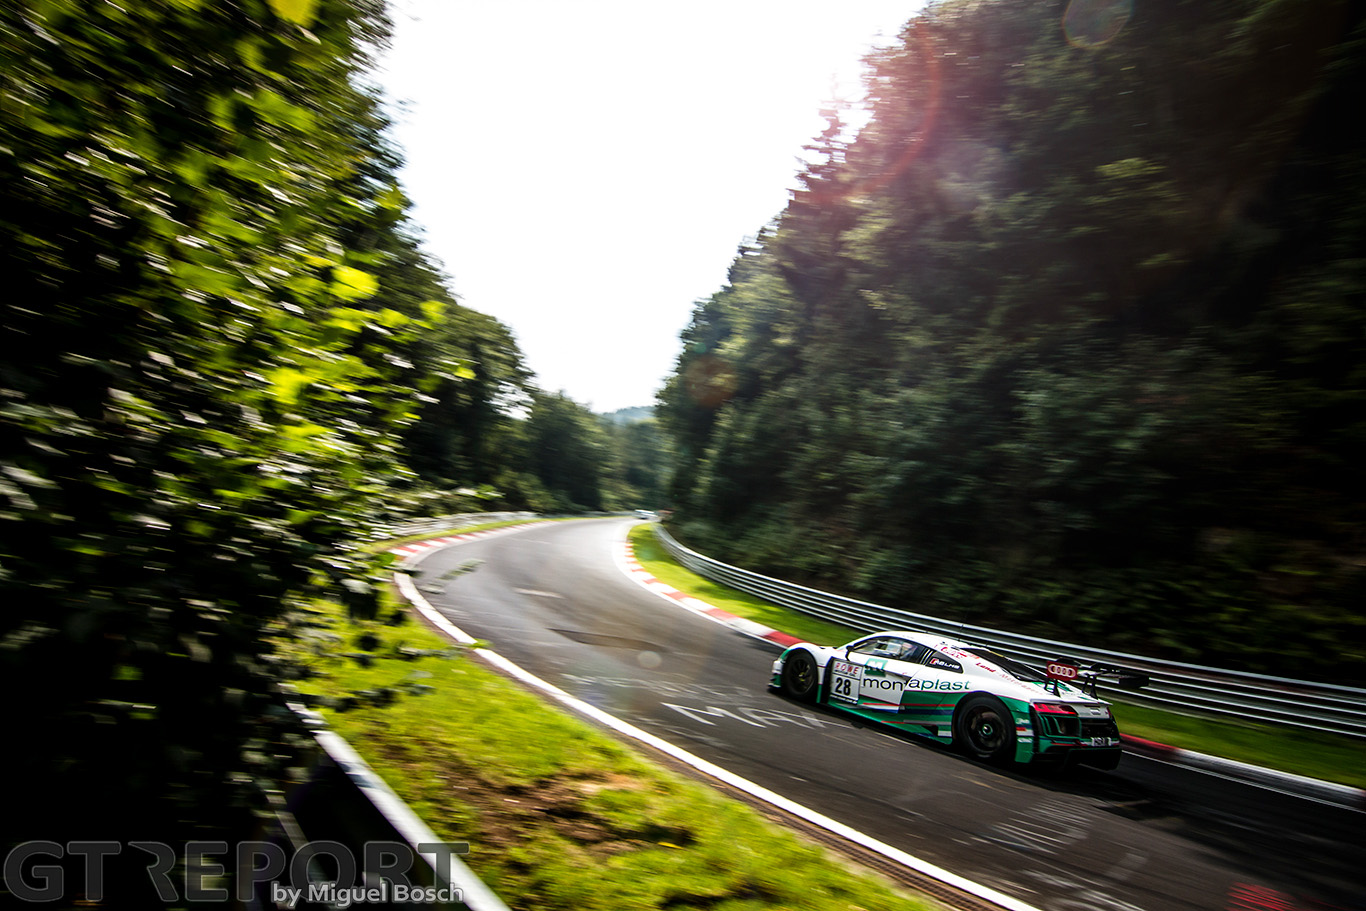 VLN6 race report: Old and new